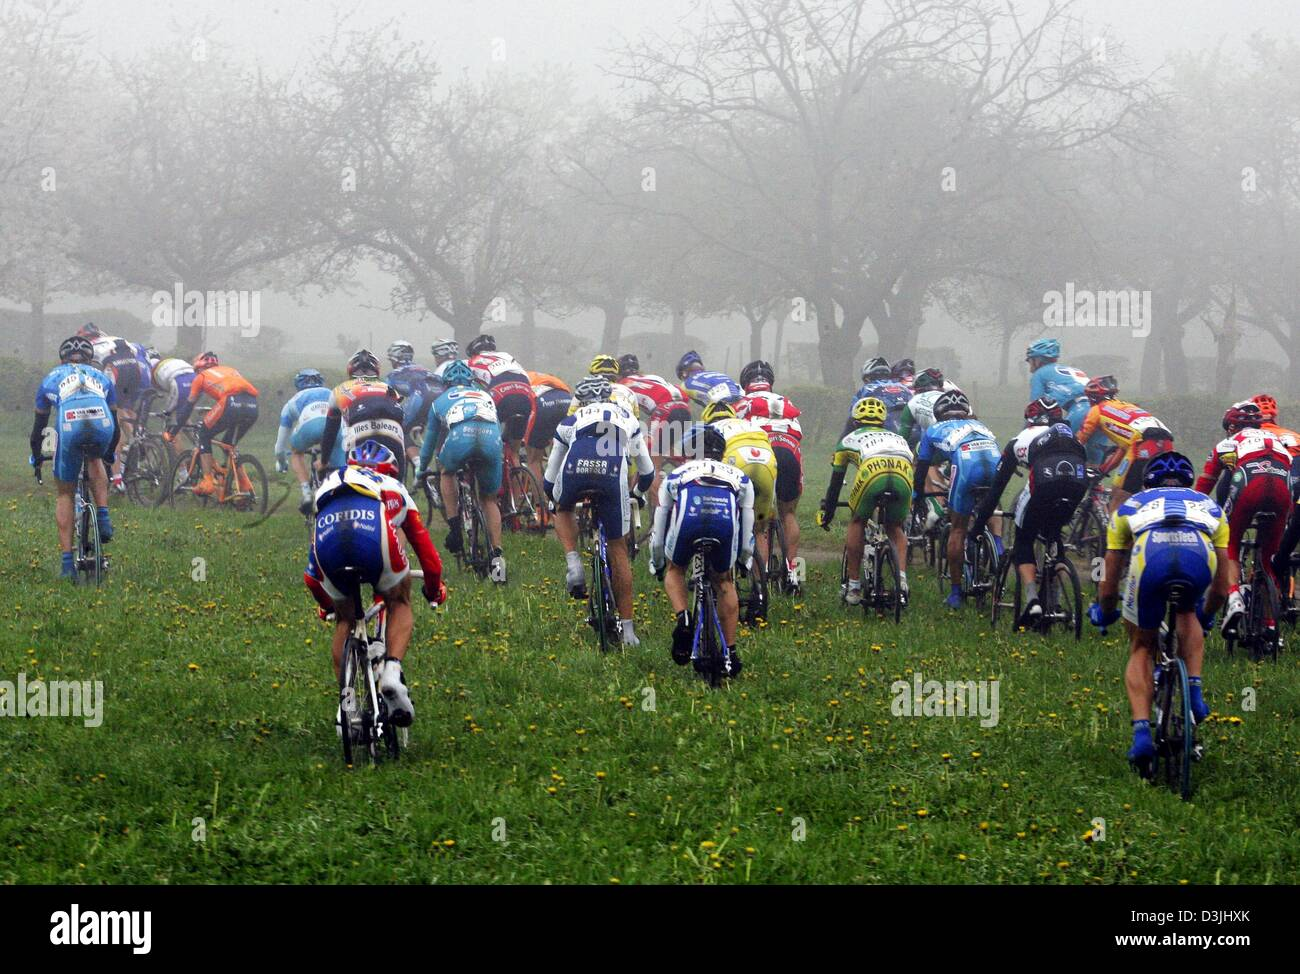 (dpa) - Cycling pros take a short cut and ride into foggy weather during the ProTour Amstel Gold Race in Valkenburg, Stock Photo